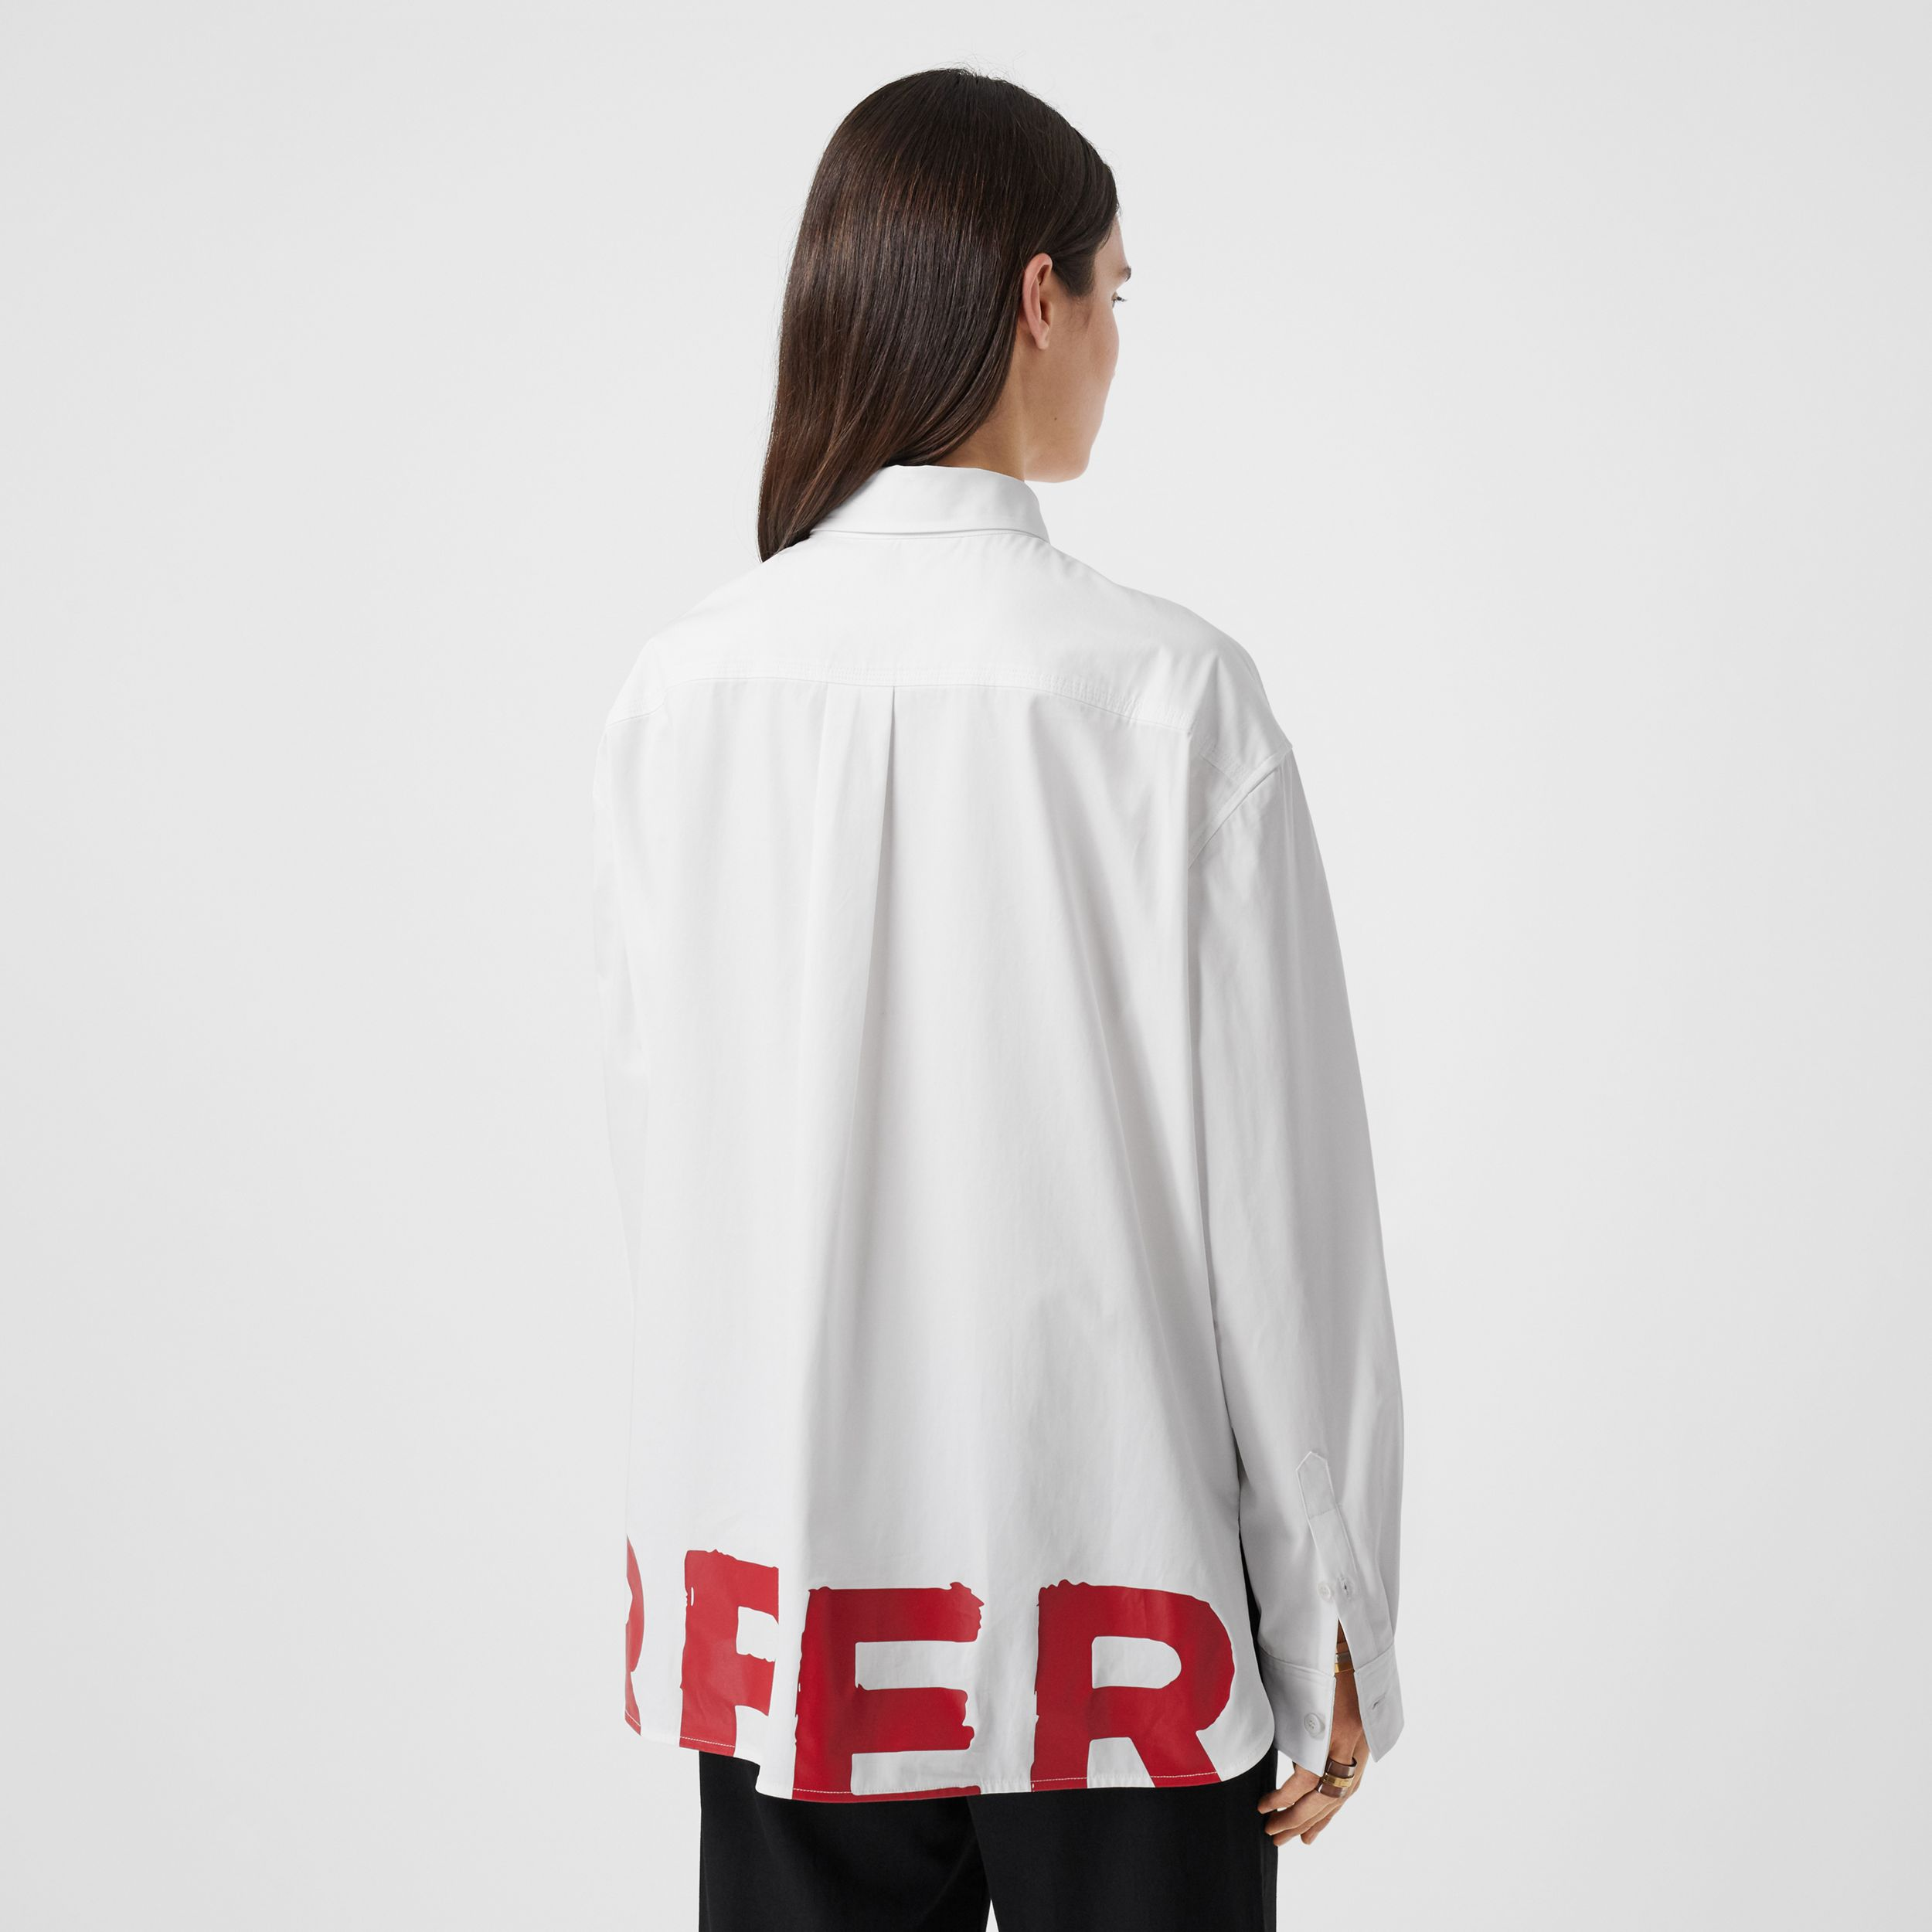 Logo Print Cotton Oversized Shirt in White - Women | Burberry - 3